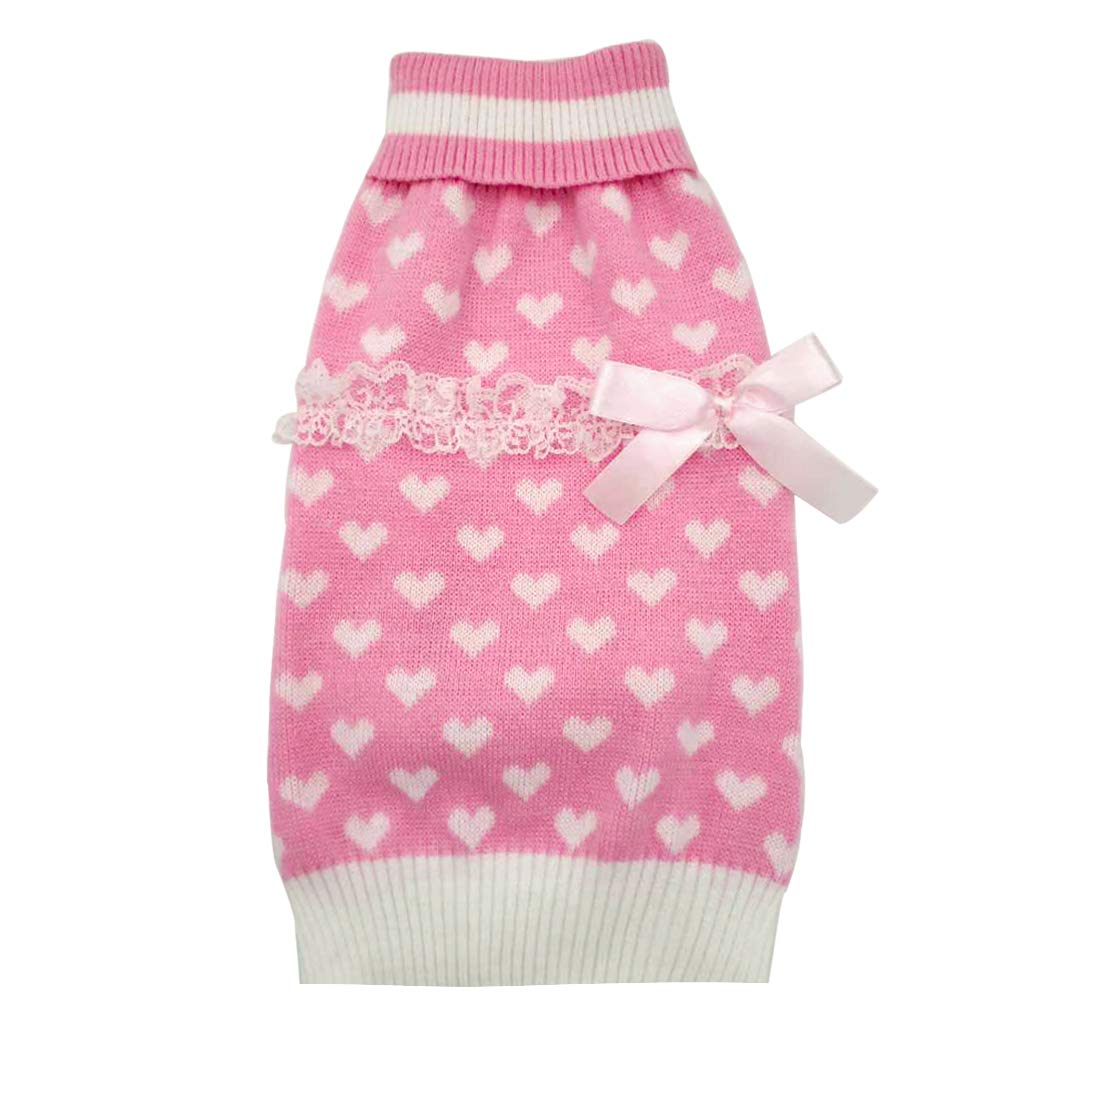 azuza Fashion Dog Sweater Pink Turtleneck Dogs Pullover Knitwear Back Length 14'' Fall Winter Warm with Lace Bowtie